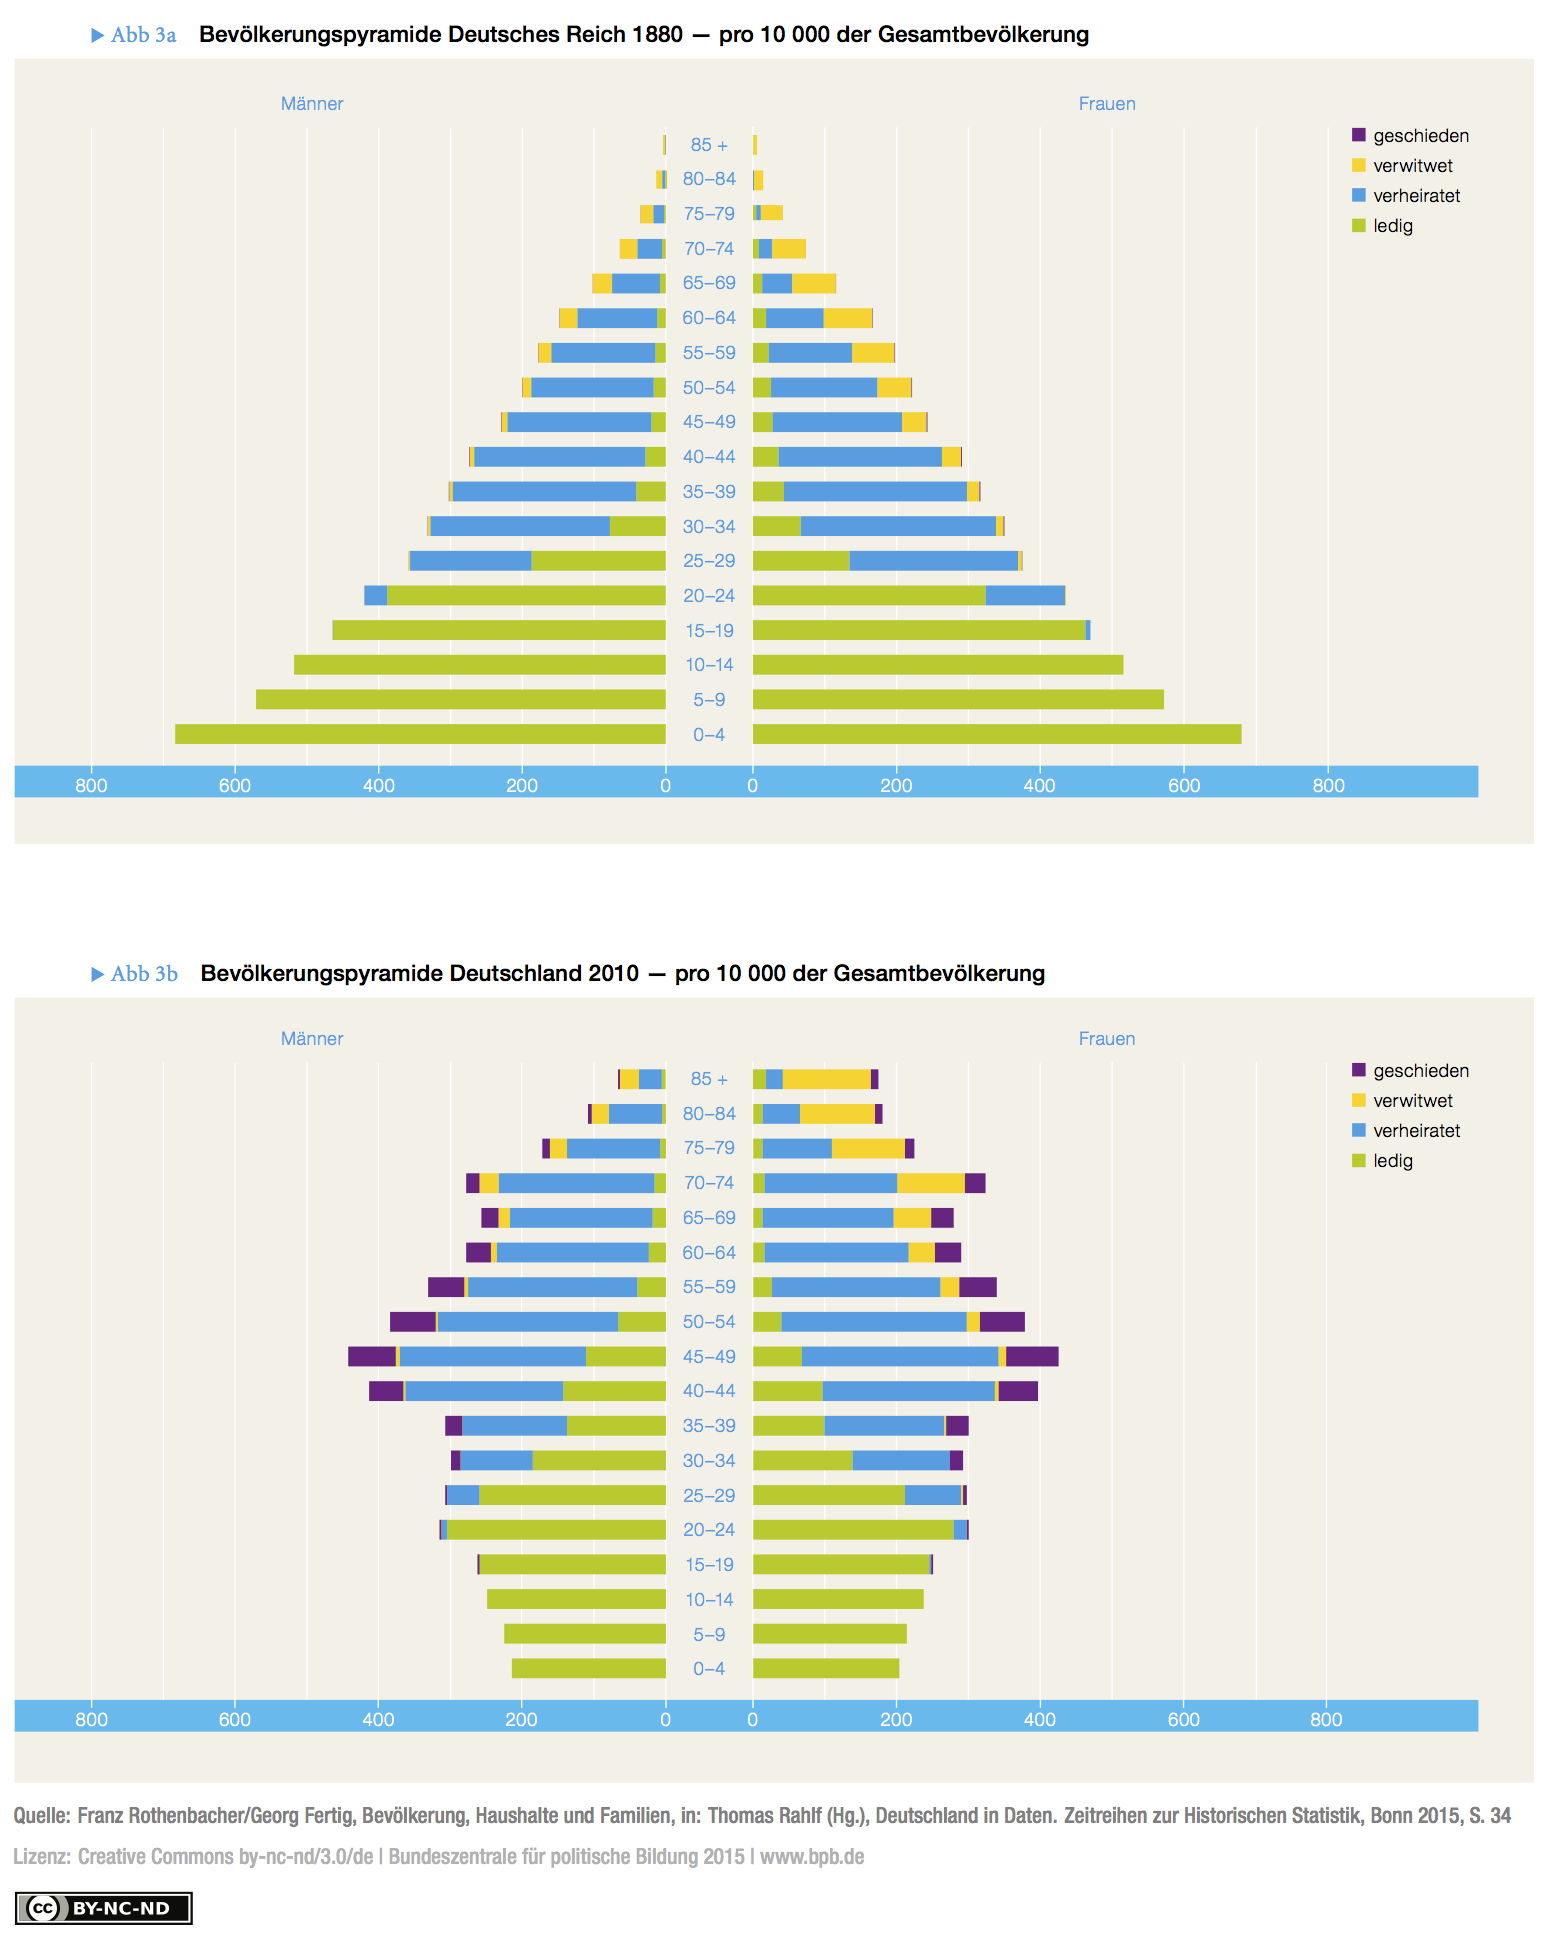 Fig. 3a: Population pyramid, German Empire, 1880 – per 10,000 of the total population. Fig. 3b: Population pyramid, Germany, 2010 – per 10,000 of the total population